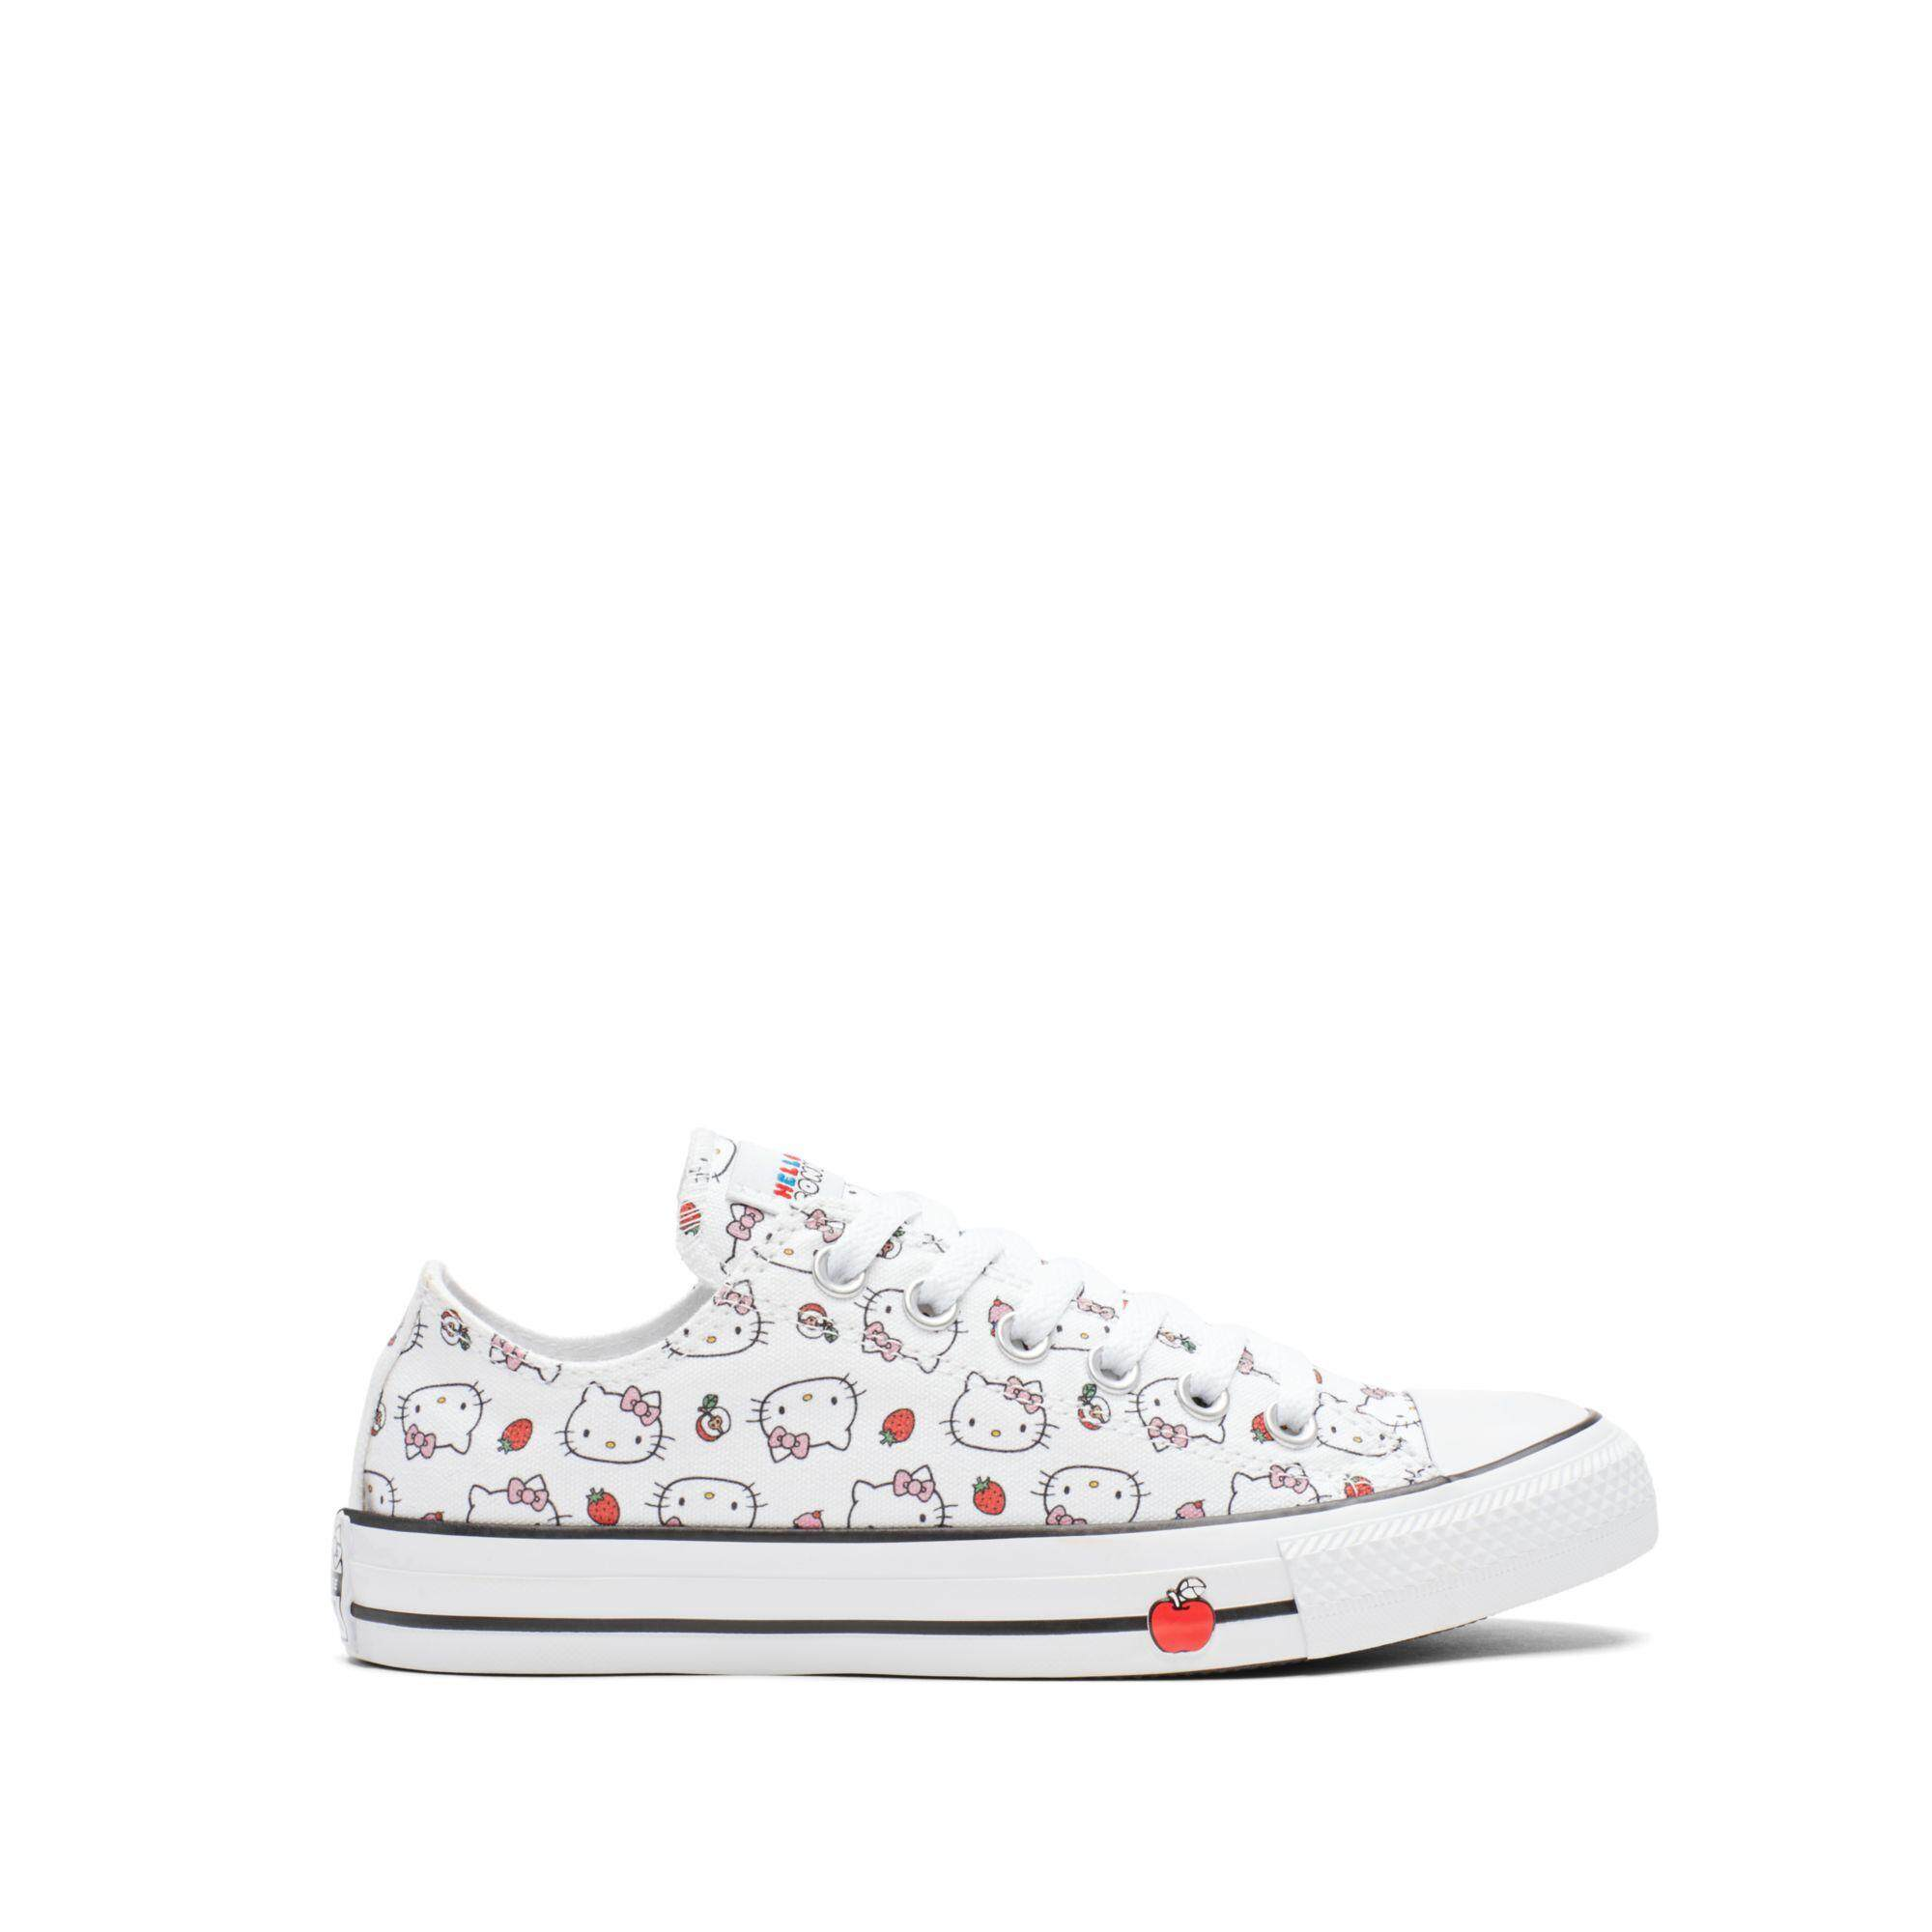 CONVERSE X HELLO KITTY CHUCK TAYLOR ALL STAR OX - 163916C